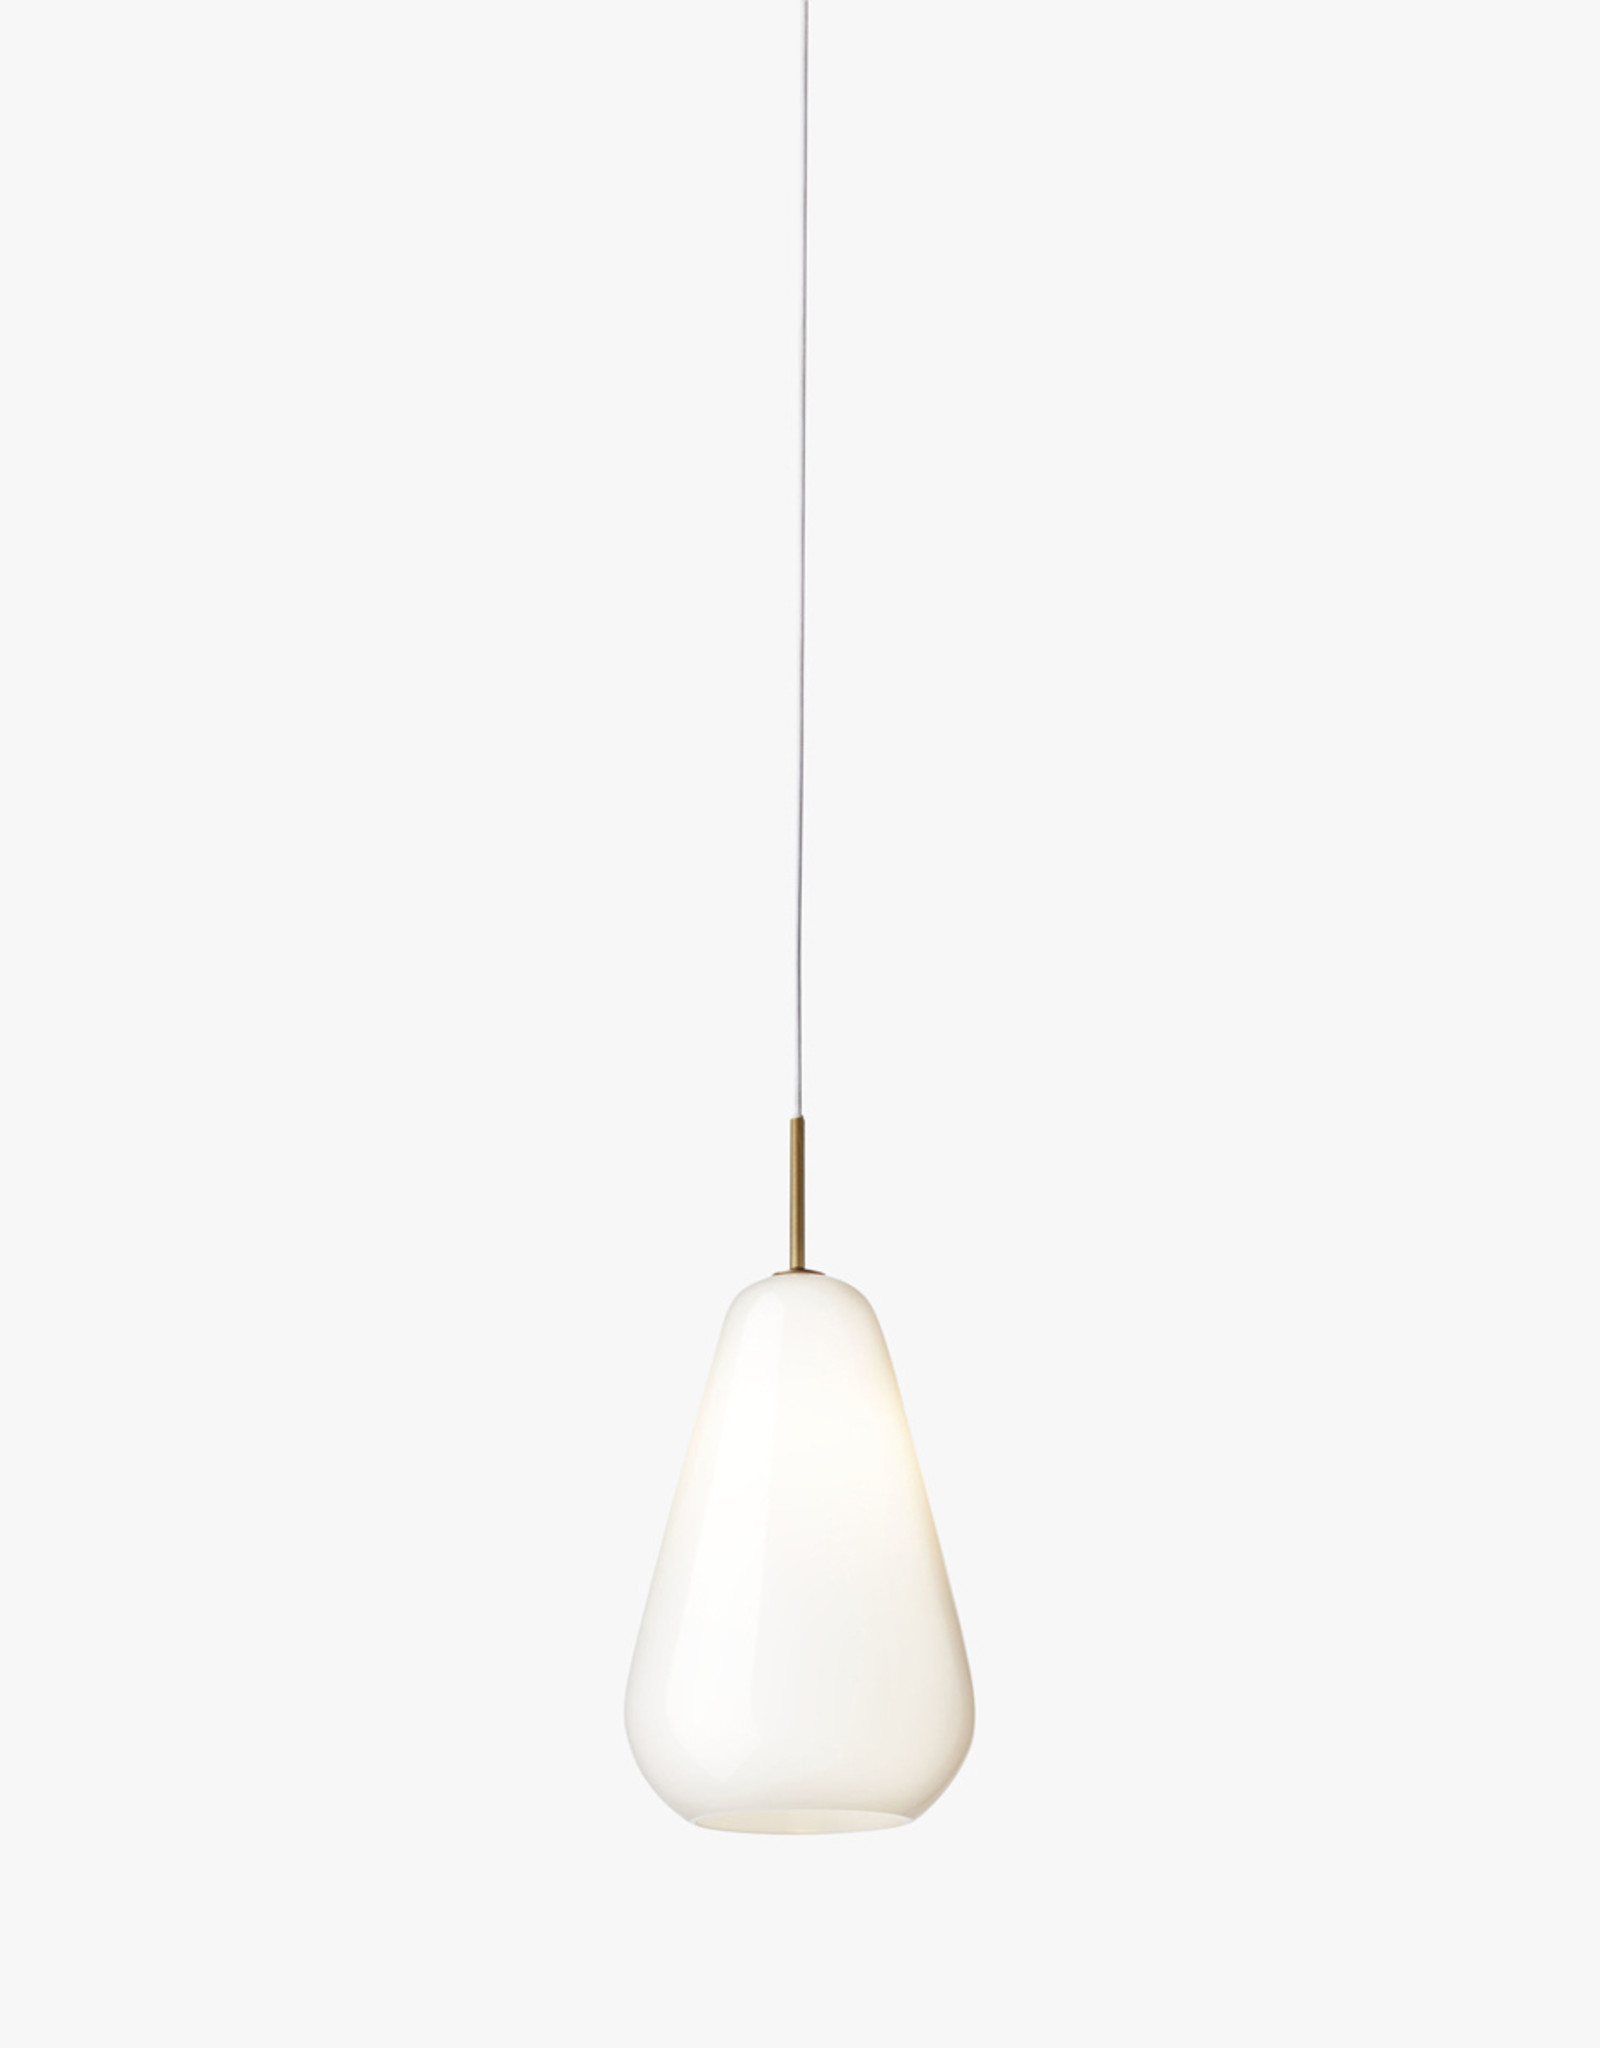 Nuura Anoli 1 pendant by Sofie Refer | M | Nordic gold/opal white | Cable L250cm | Ceiling plate Dia10cm | Dia19cm x H38.5cm | 1x G9 illumination LED 5.6W bulb required